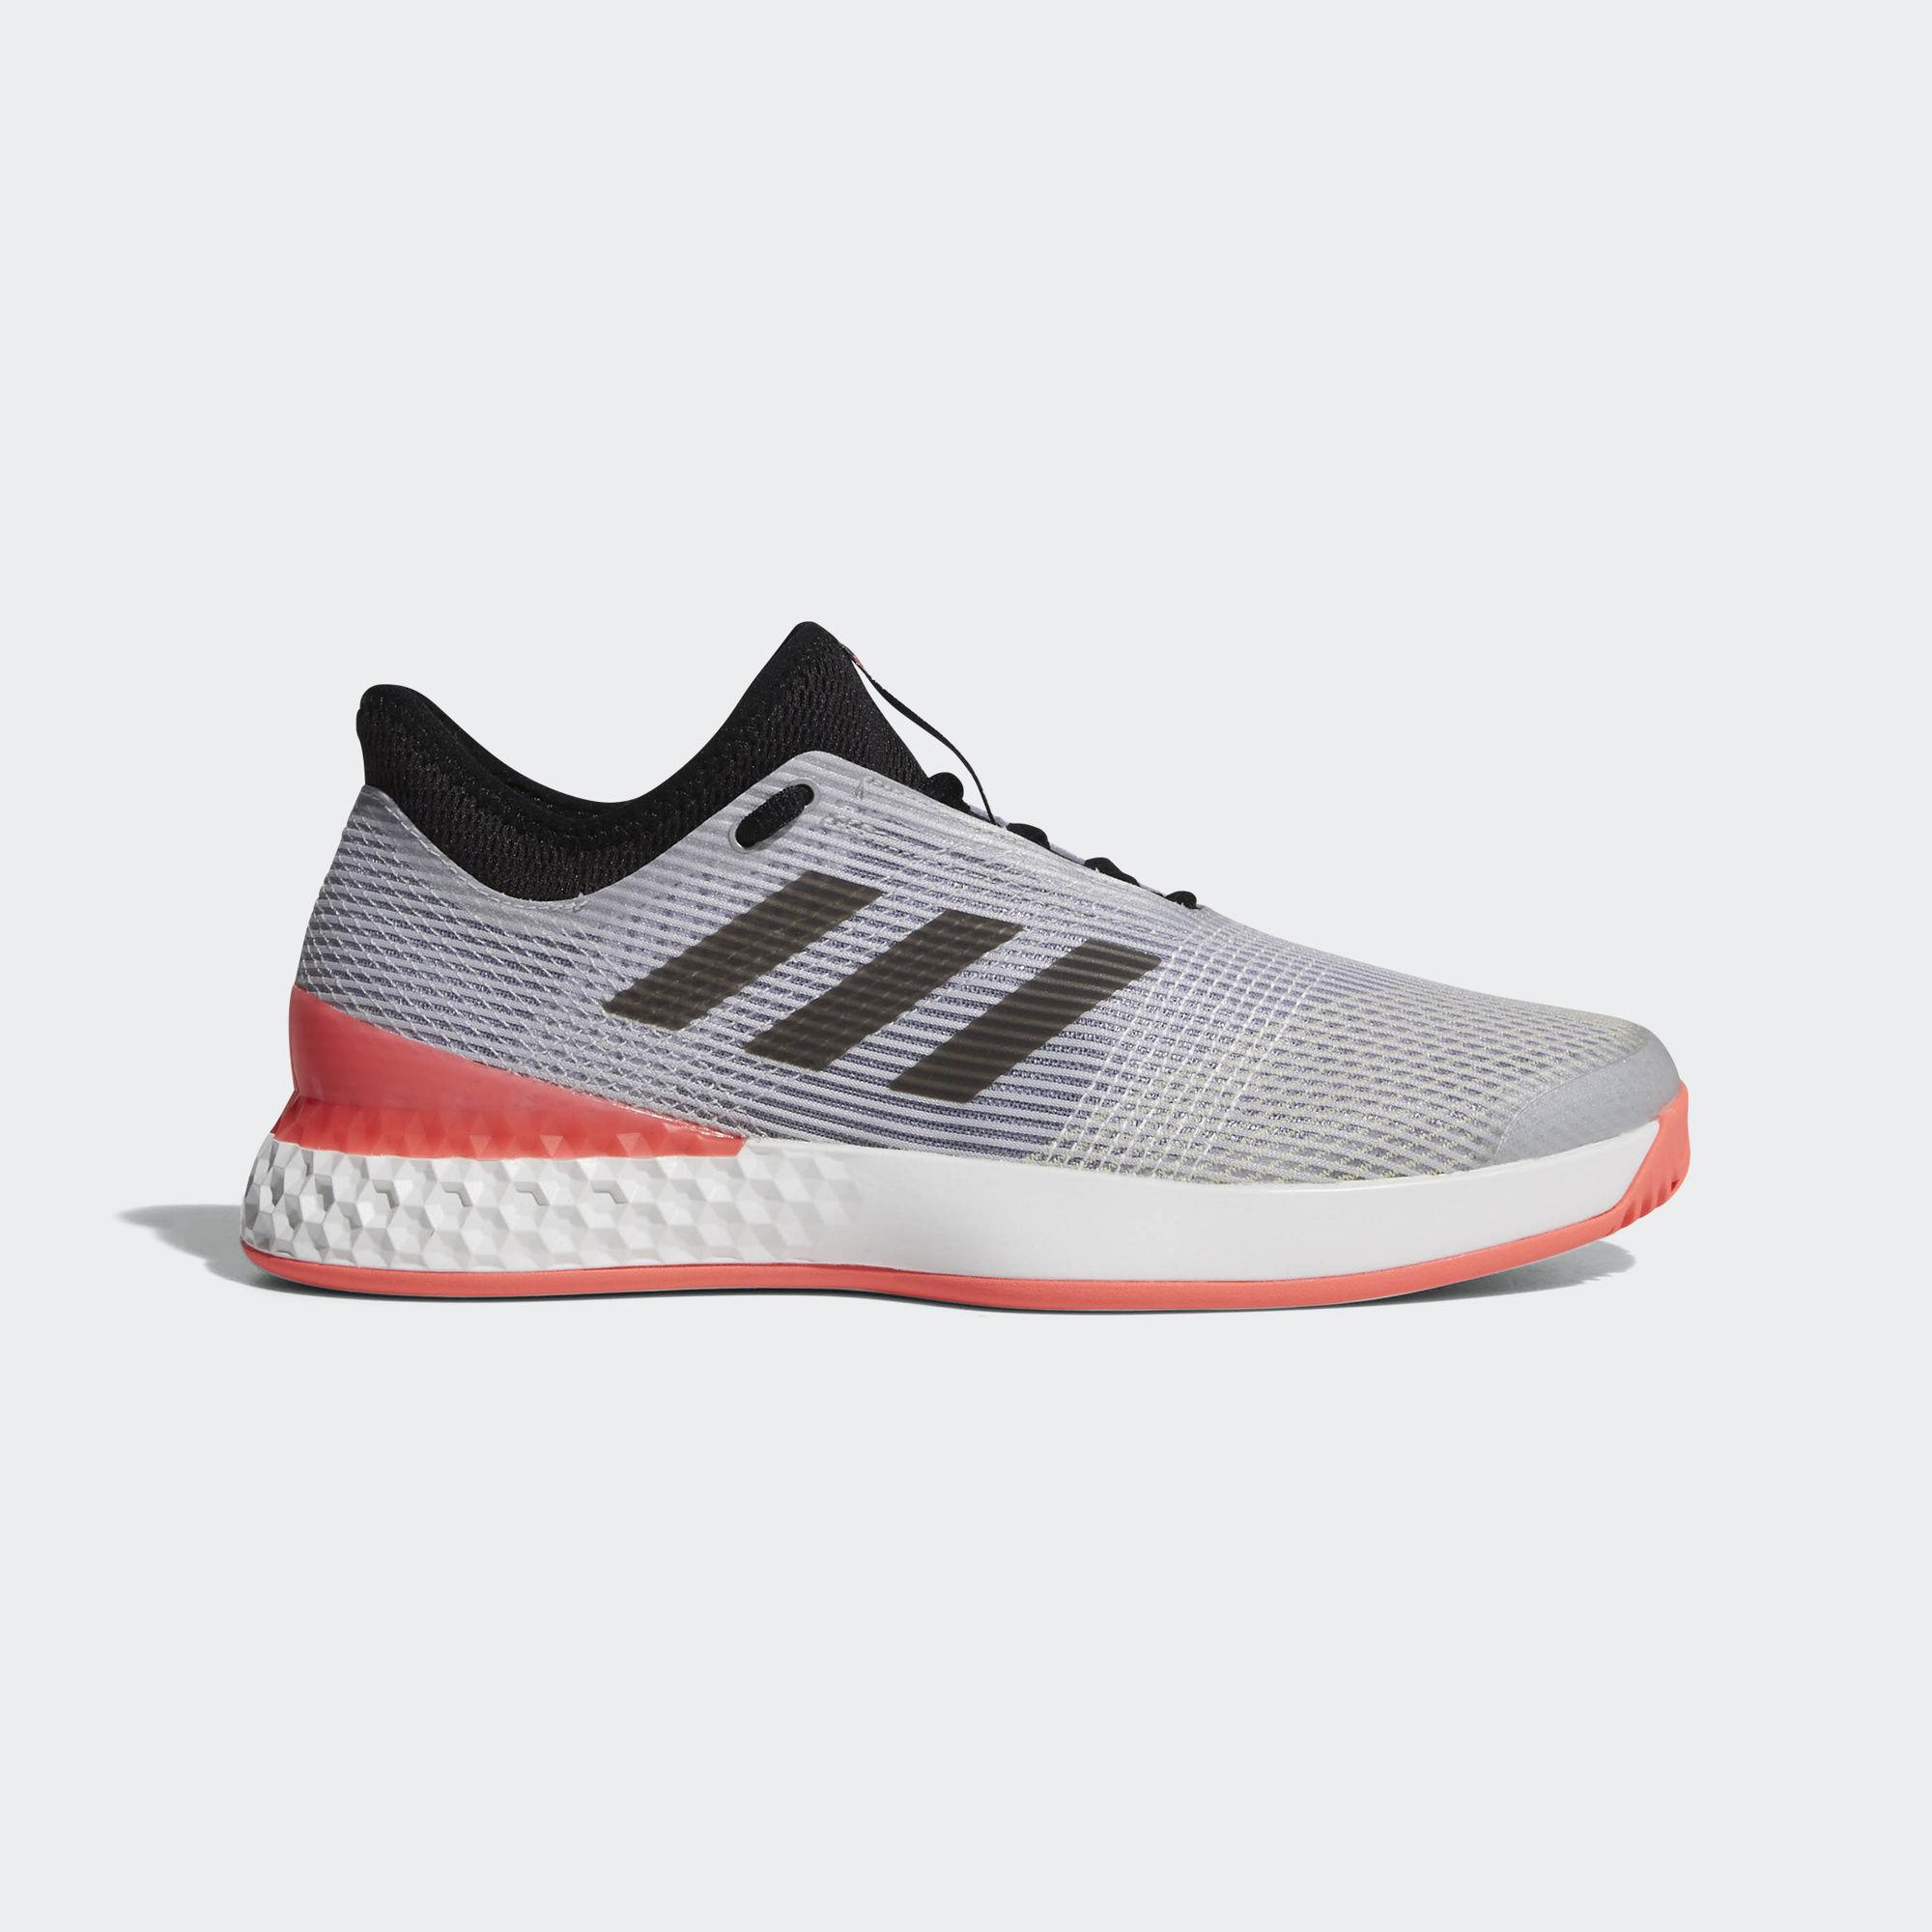 wholesale dealer 918e6 64052 Adidas Mens Adizero Ubersonic 3.0 Tennis Shoes - Matte SilverRed -  Tennisnuts.com